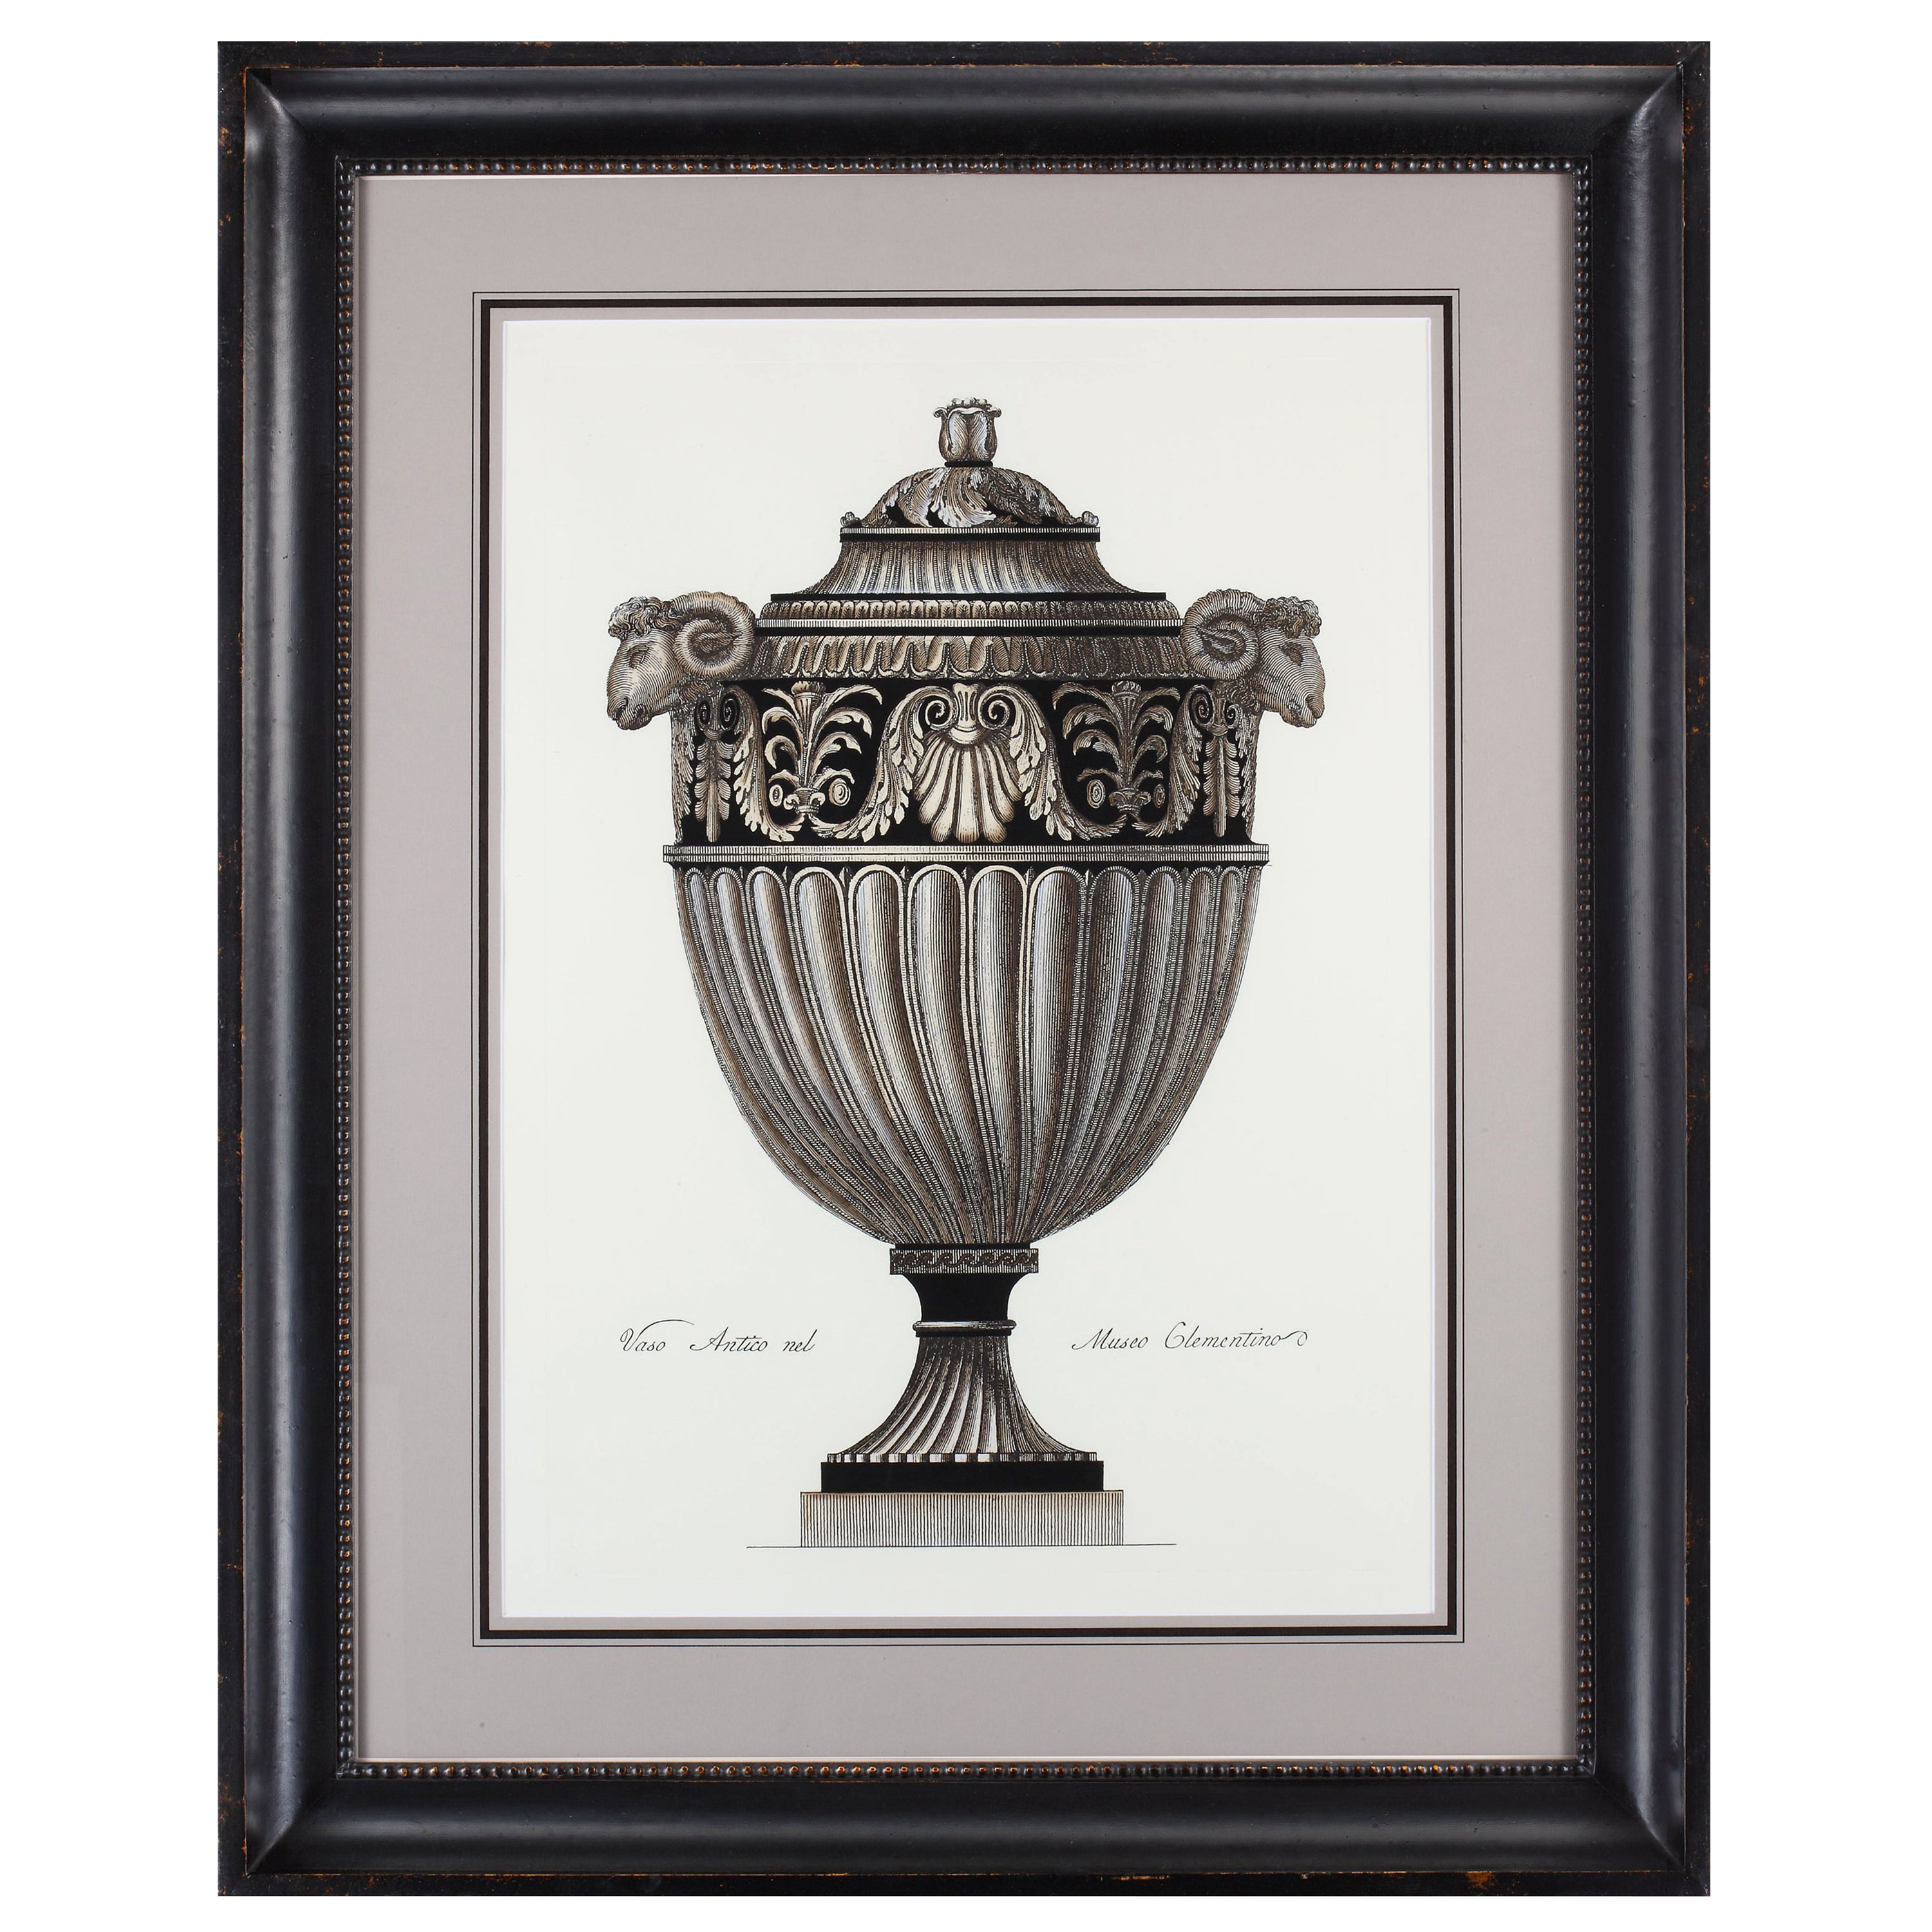 Contemporary Italian hand coloured Roman vase print with handcrafted black frame